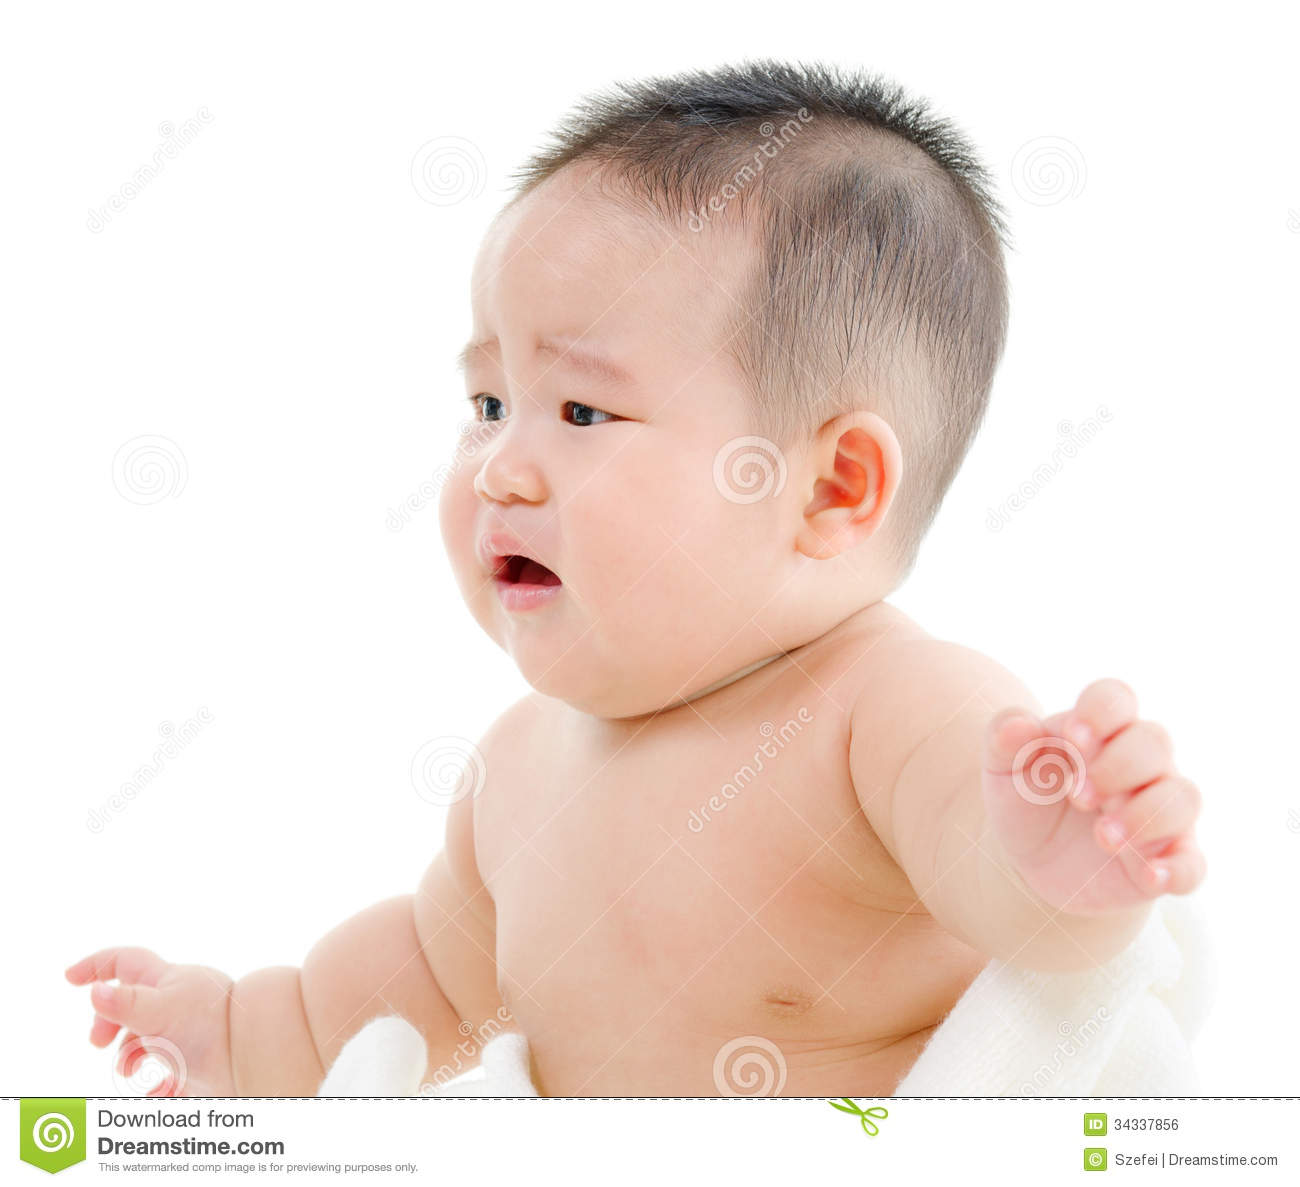 Hungry asian baby boy crying sitting isolated on white background